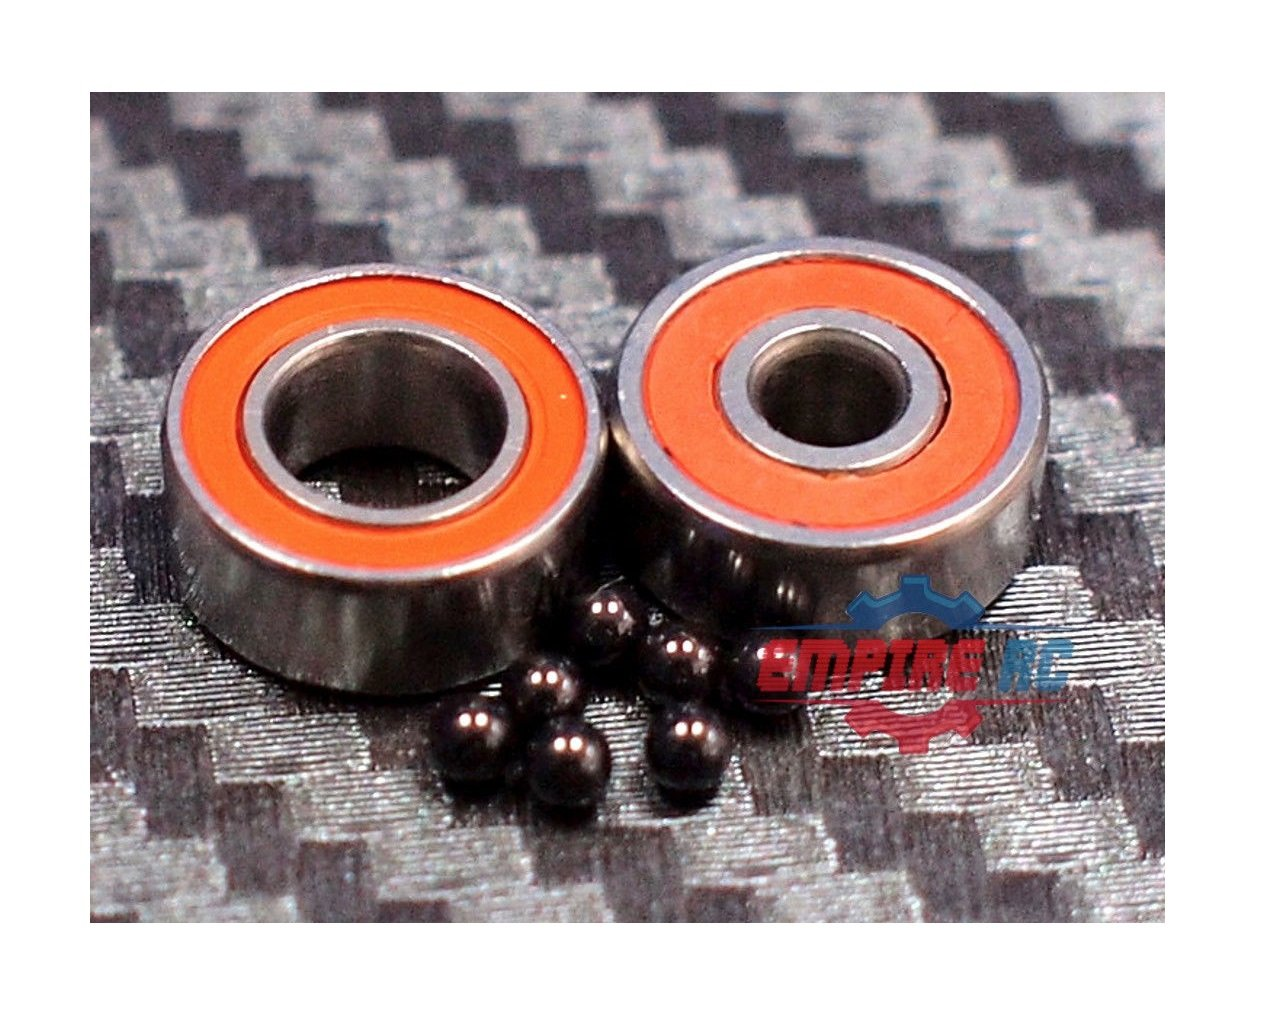 440c Stainless Steel Rubber Seal Ball Bearings 10 PCS 9x17x5 mm S689-2RS